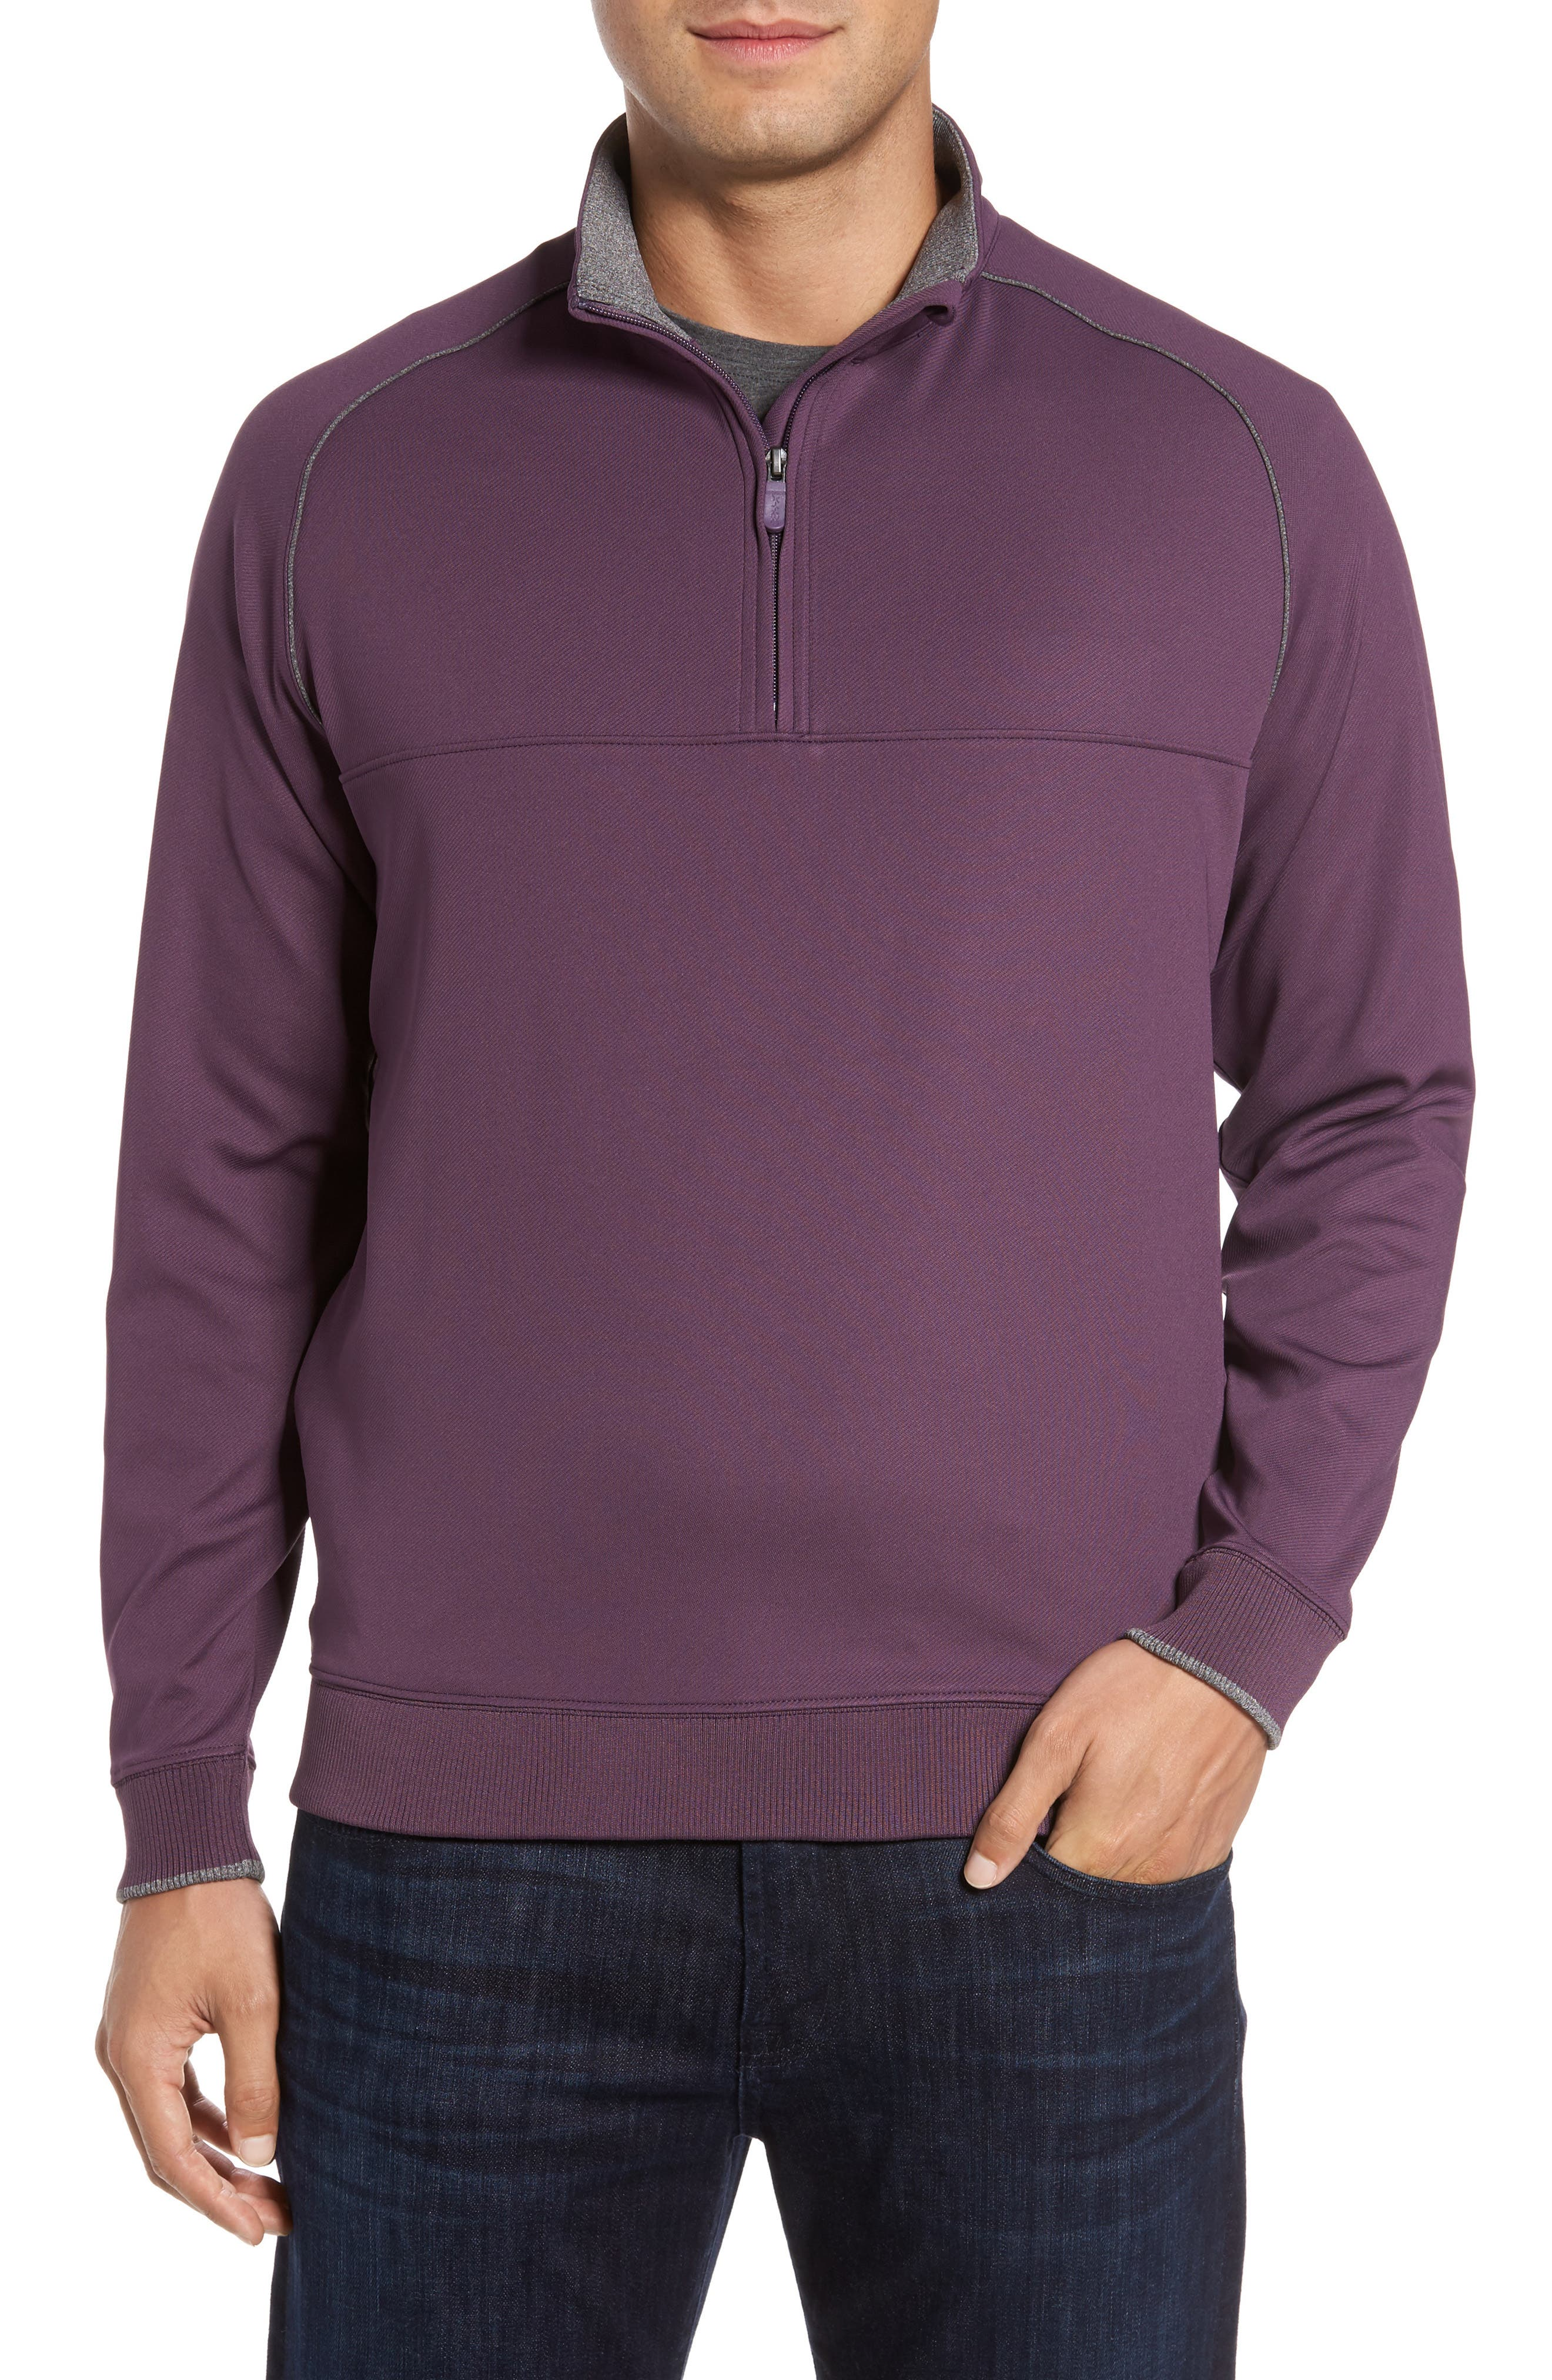 XH20 Banded Bottom Pullover,                             Main thumbnail 1, color,                             Blackberry